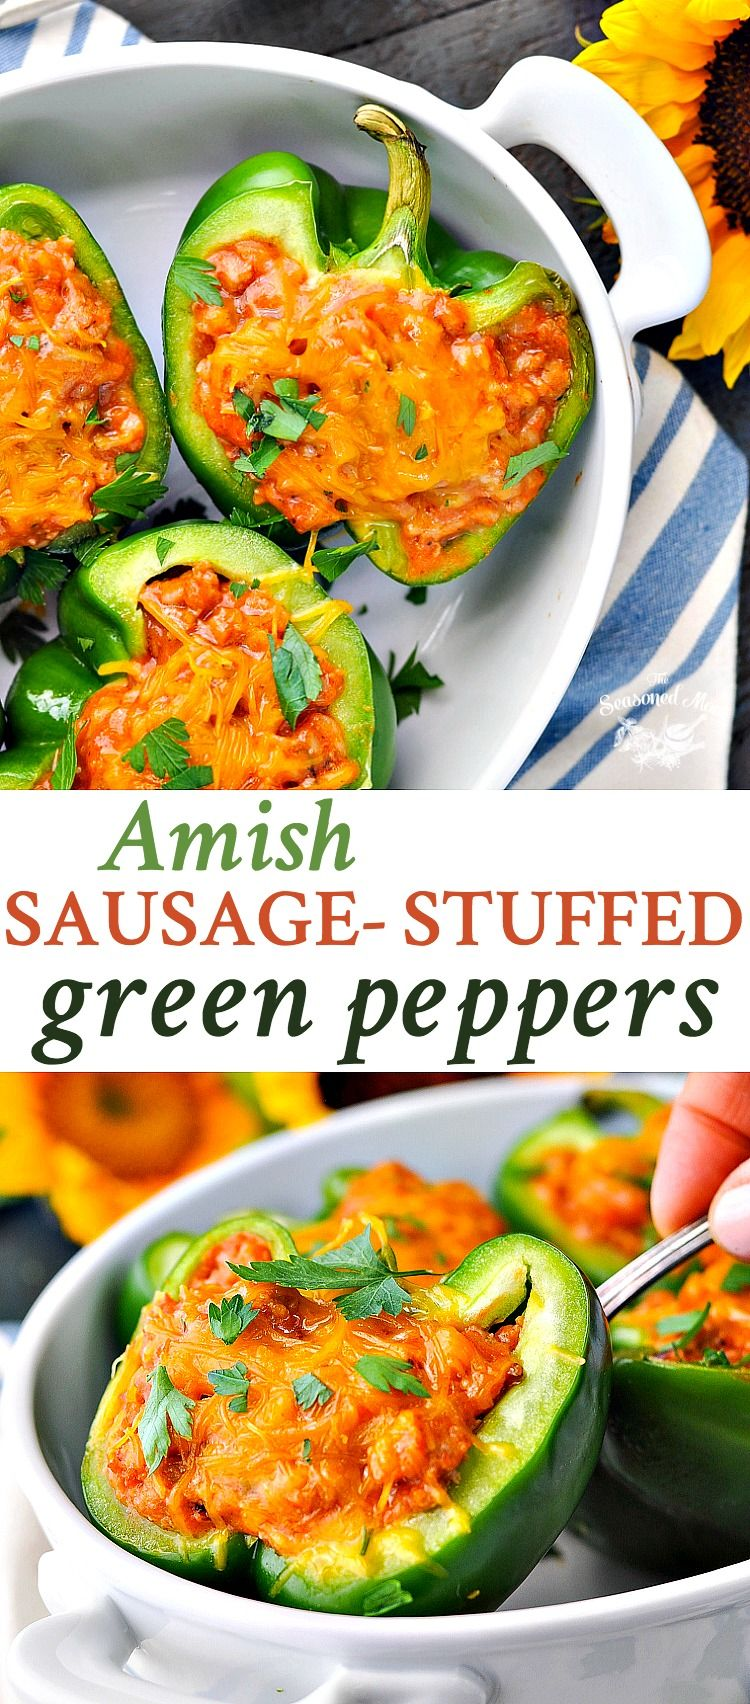 Amish Sausage Stuffed Green Peppers Recipe Stuffed Peppers Stuffed Green Peppers Cooking For A Crowd